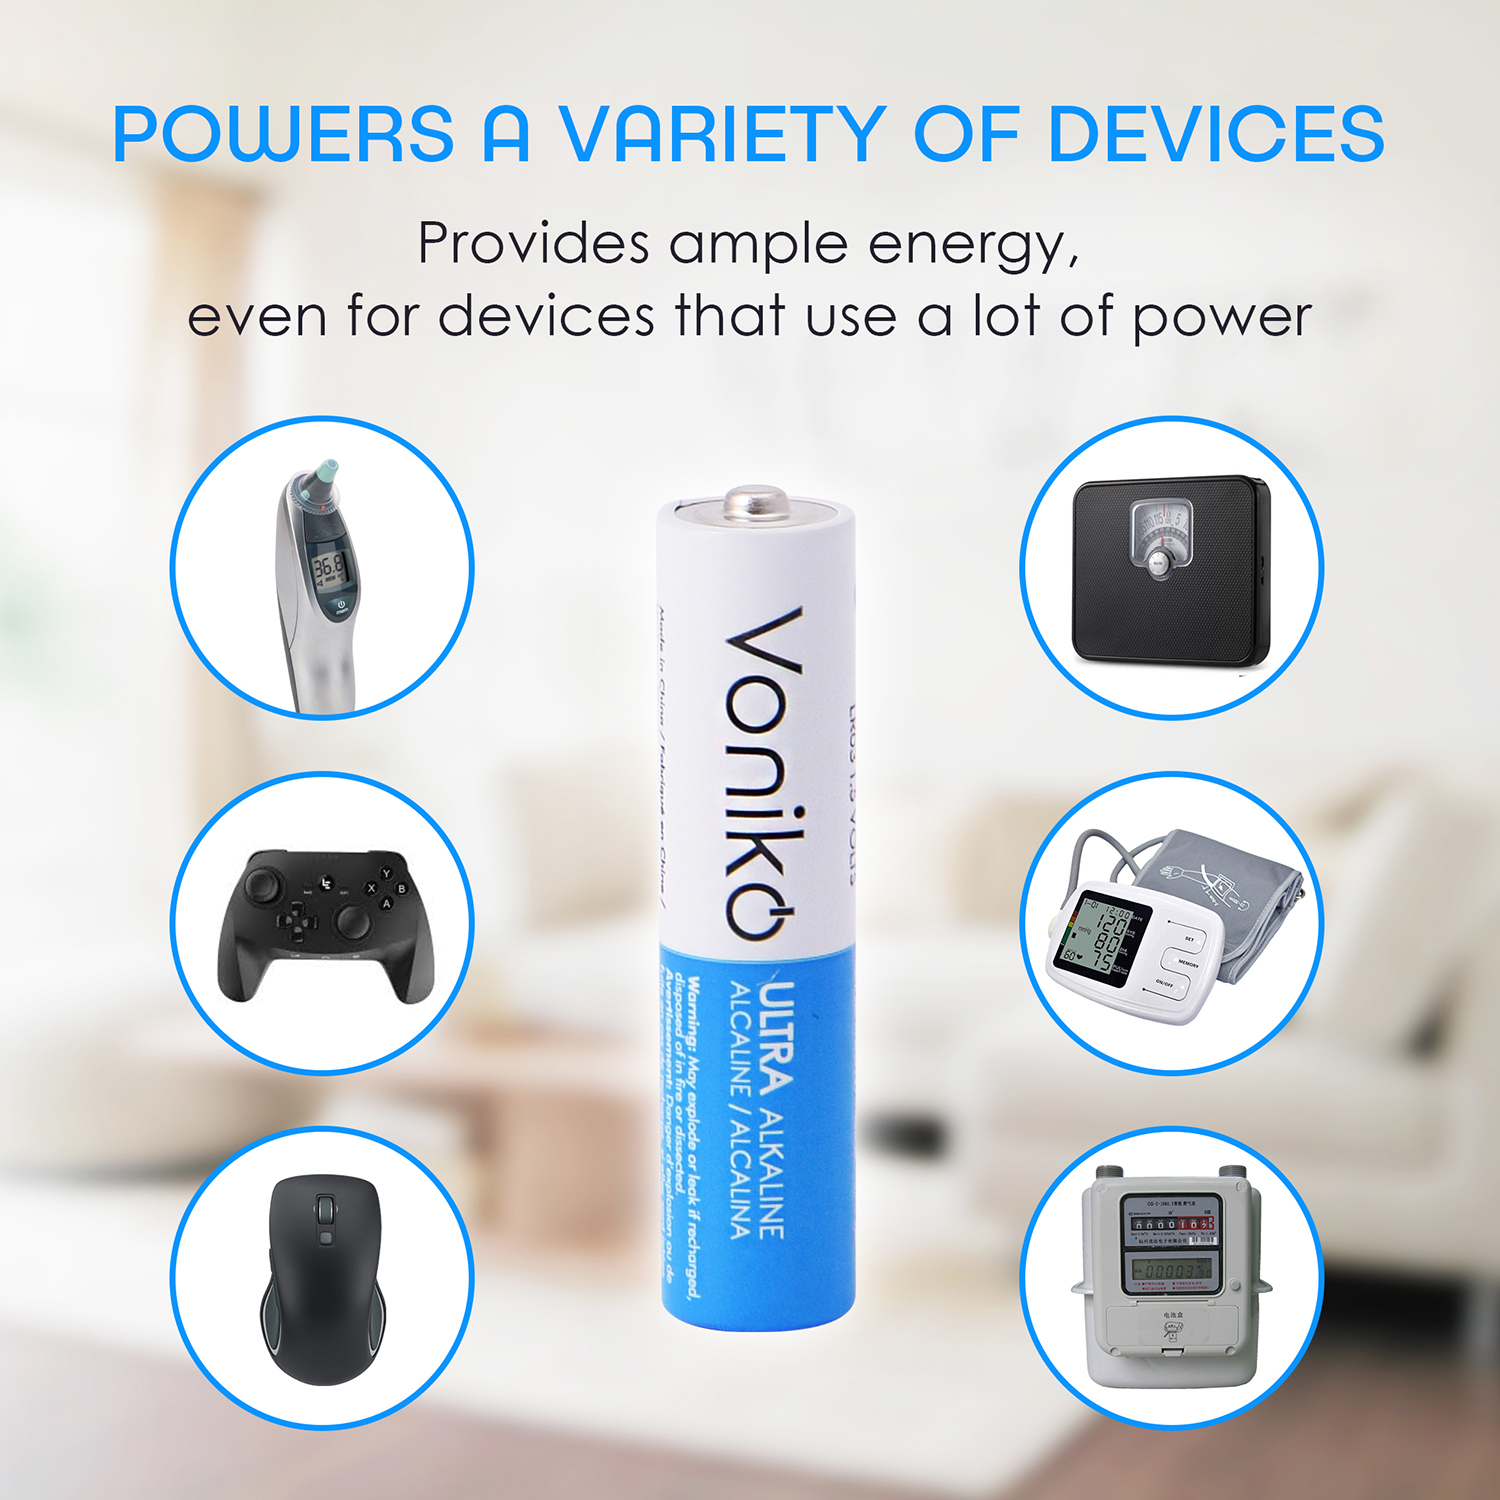 power a variety of devices graphic